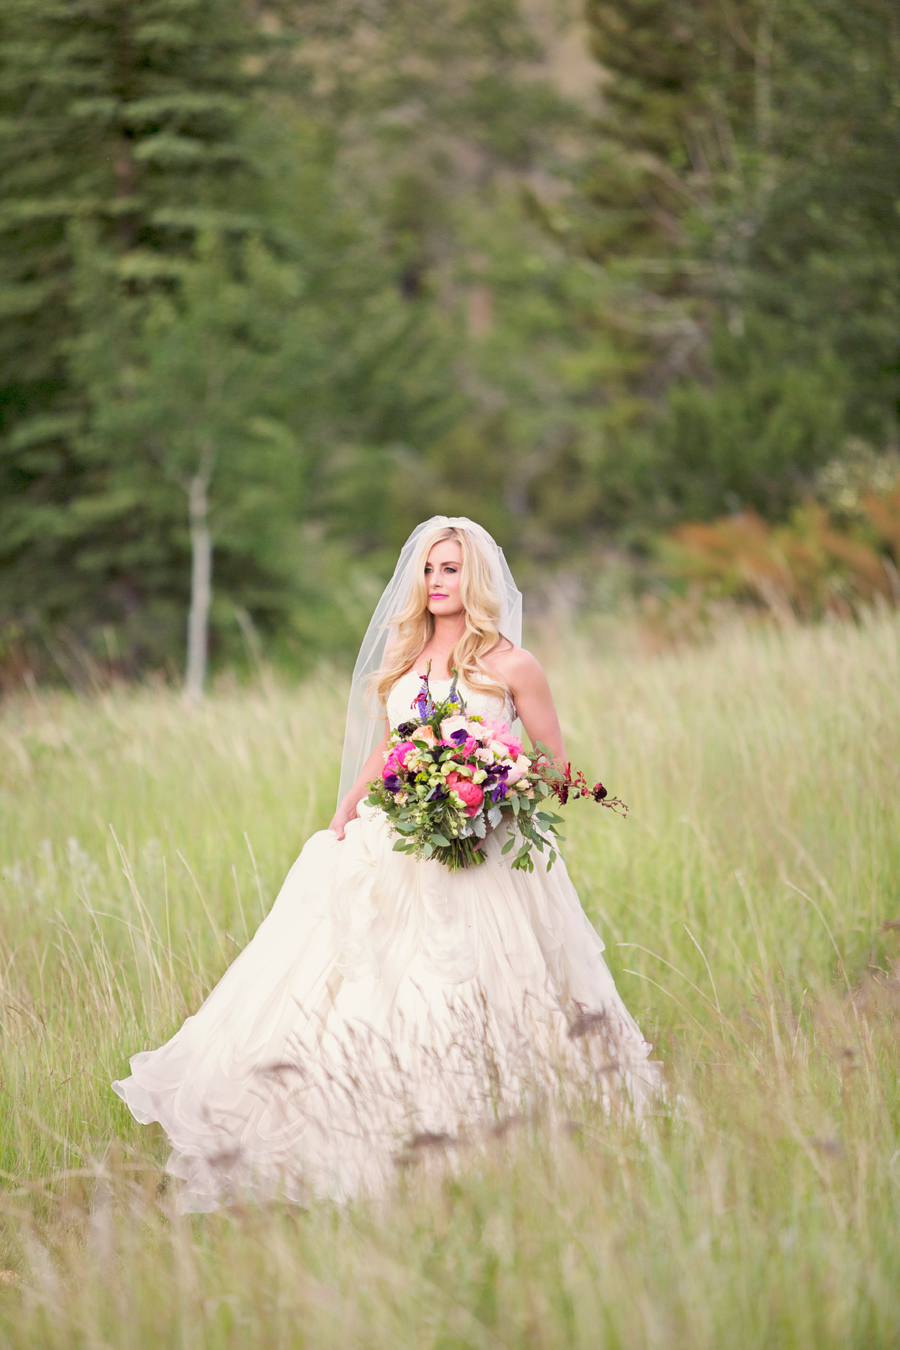 Stephanie Quayle Wedding / Photographer: Arnica Spring Photography / Wedding Design, Planning, & Wedding Flowers: Katalin Green